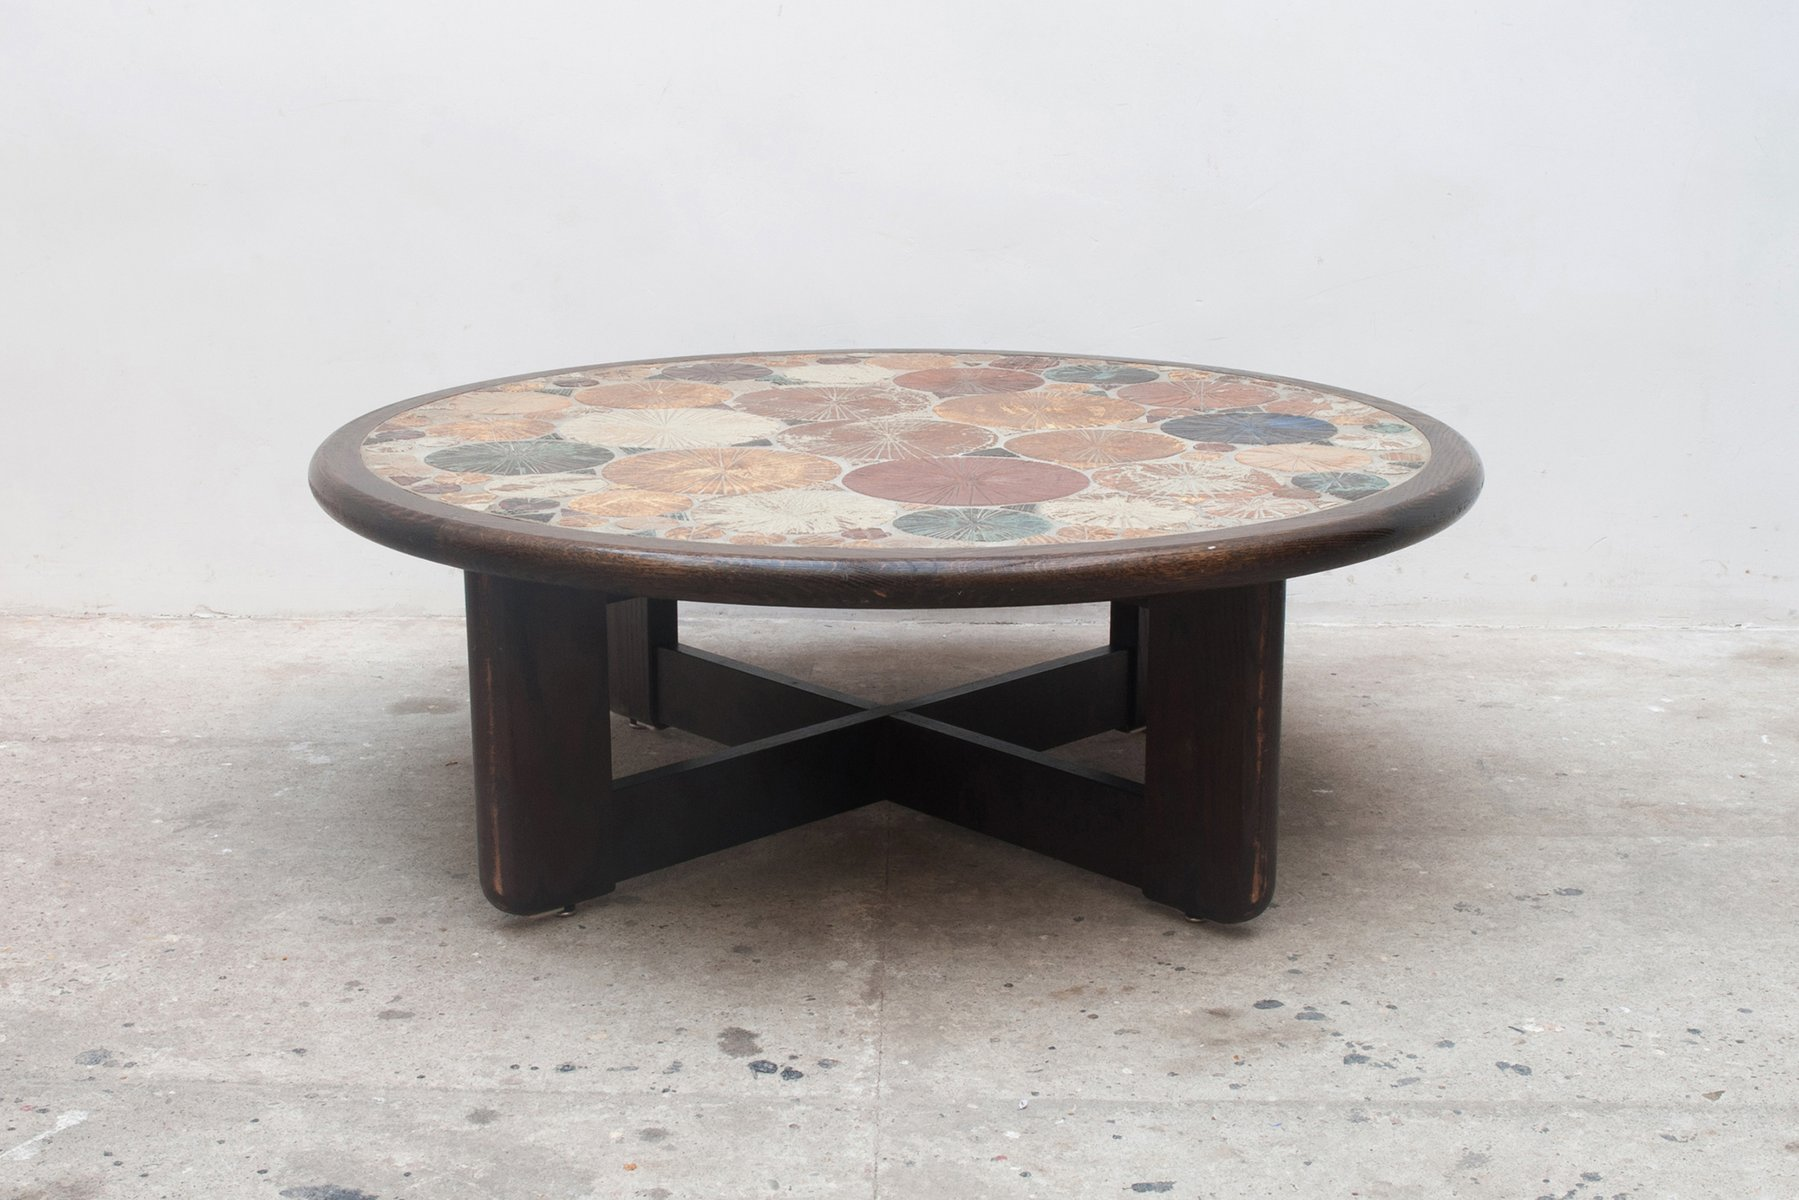 Vintage Round Ceramic Art Tile Coffee Table by Tue Poulsen for